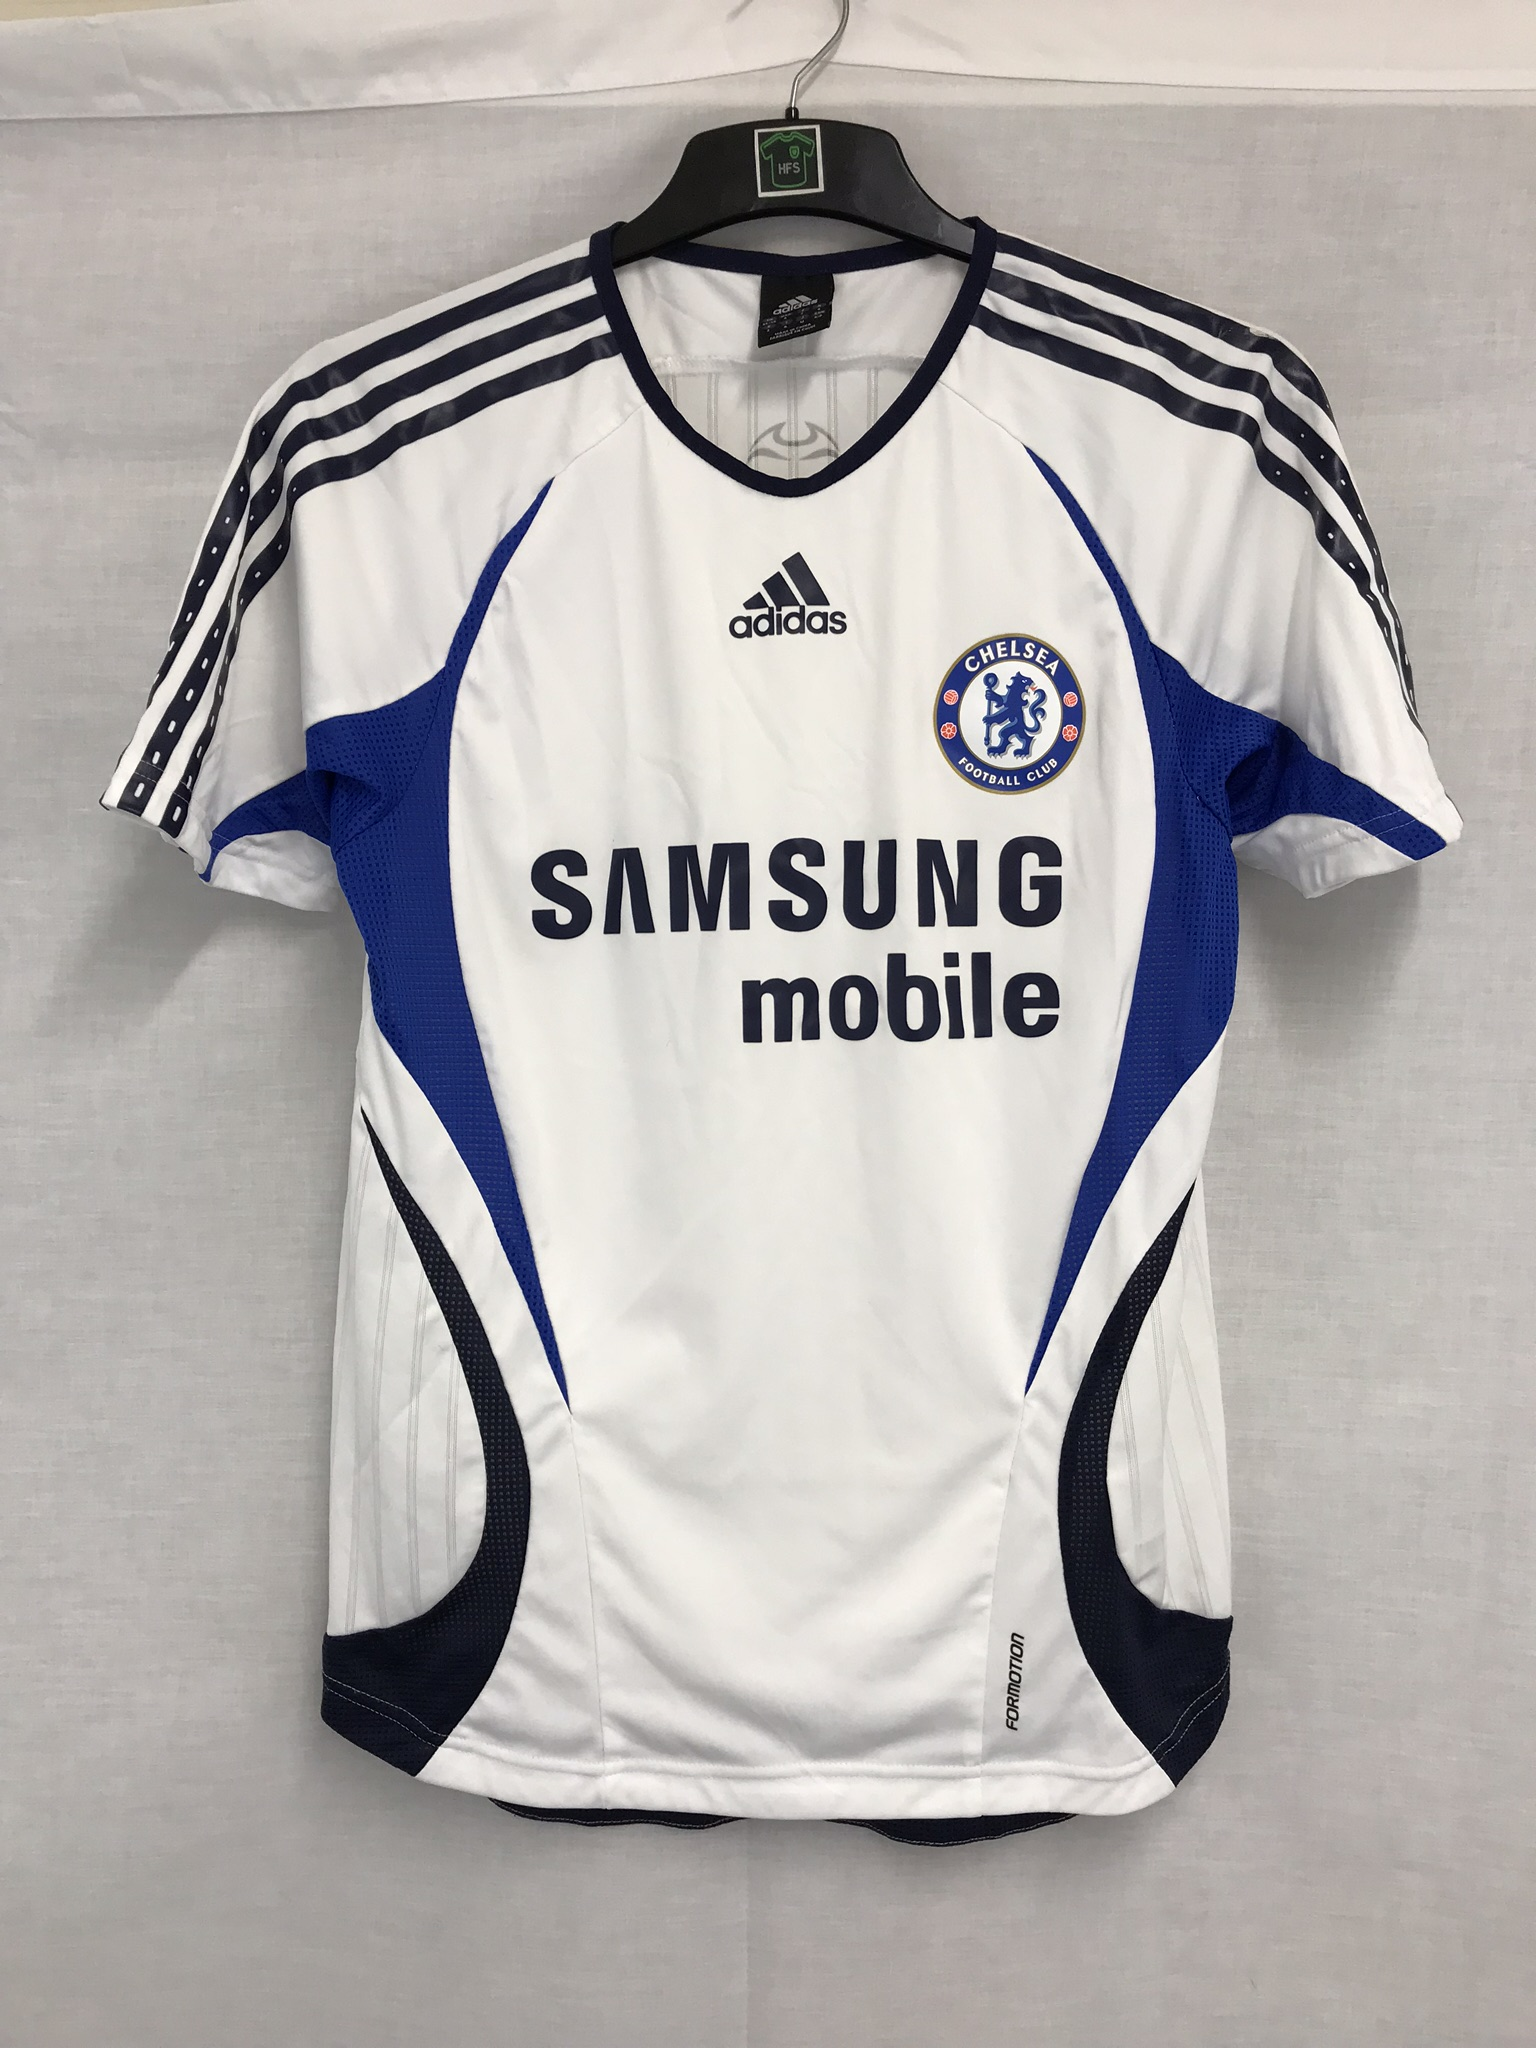 free shipping a7ca3 60f3a Chelsea Training Football Shirt 2006/07 Adults Small Adidas